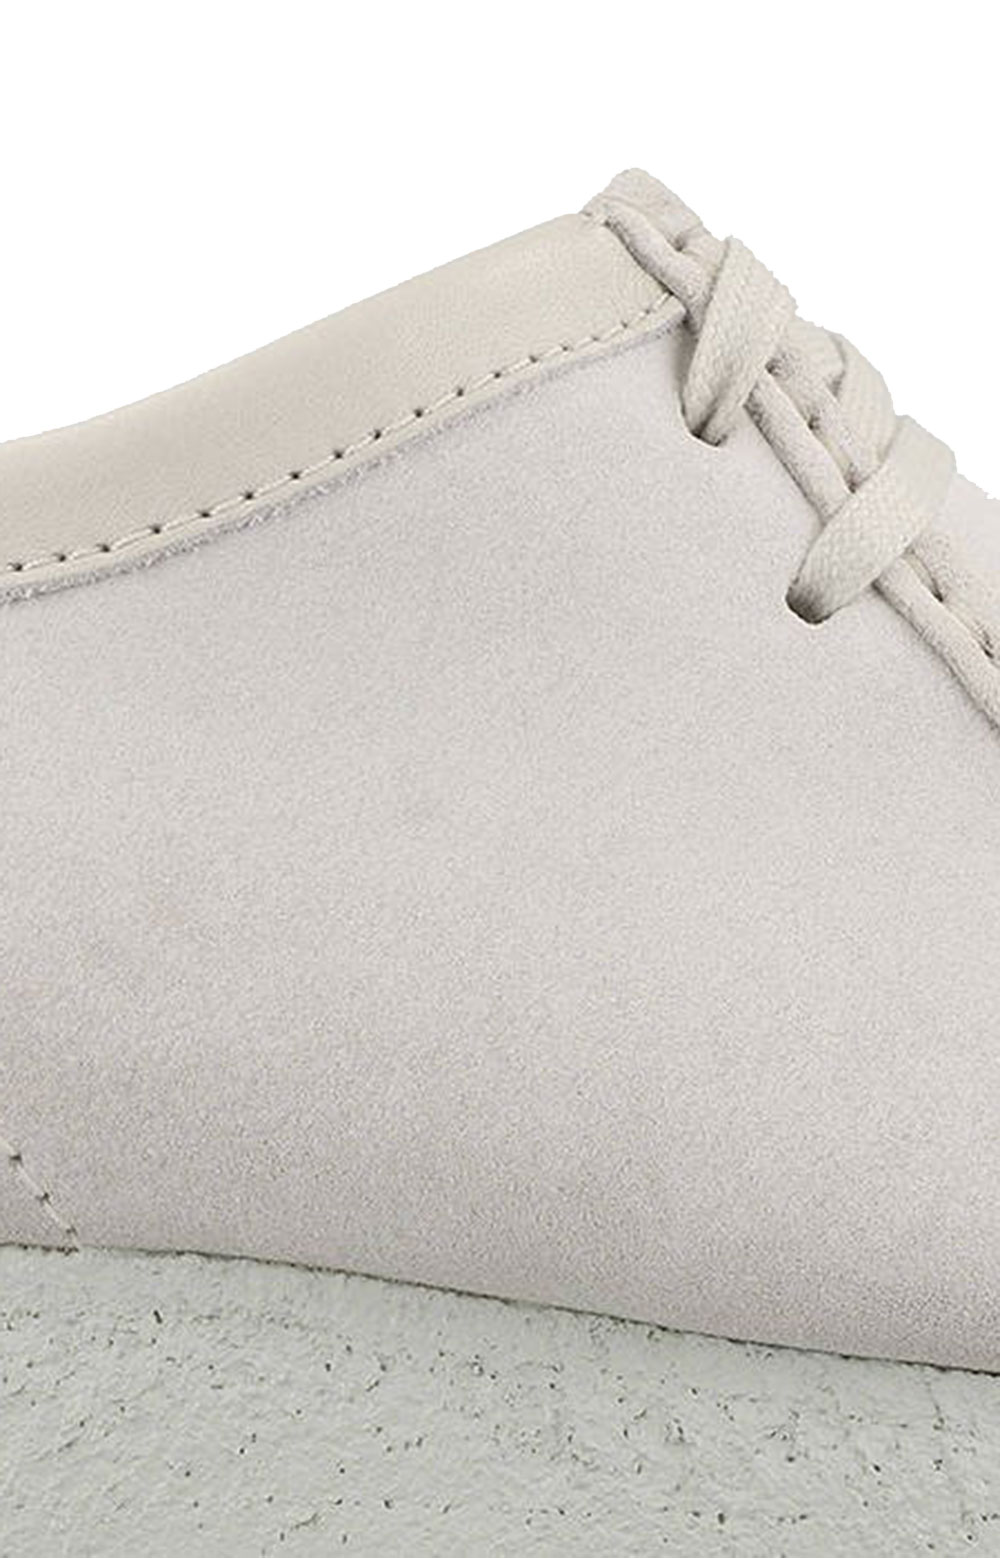 (26158421) Wallabee Shoes - White Suede 7